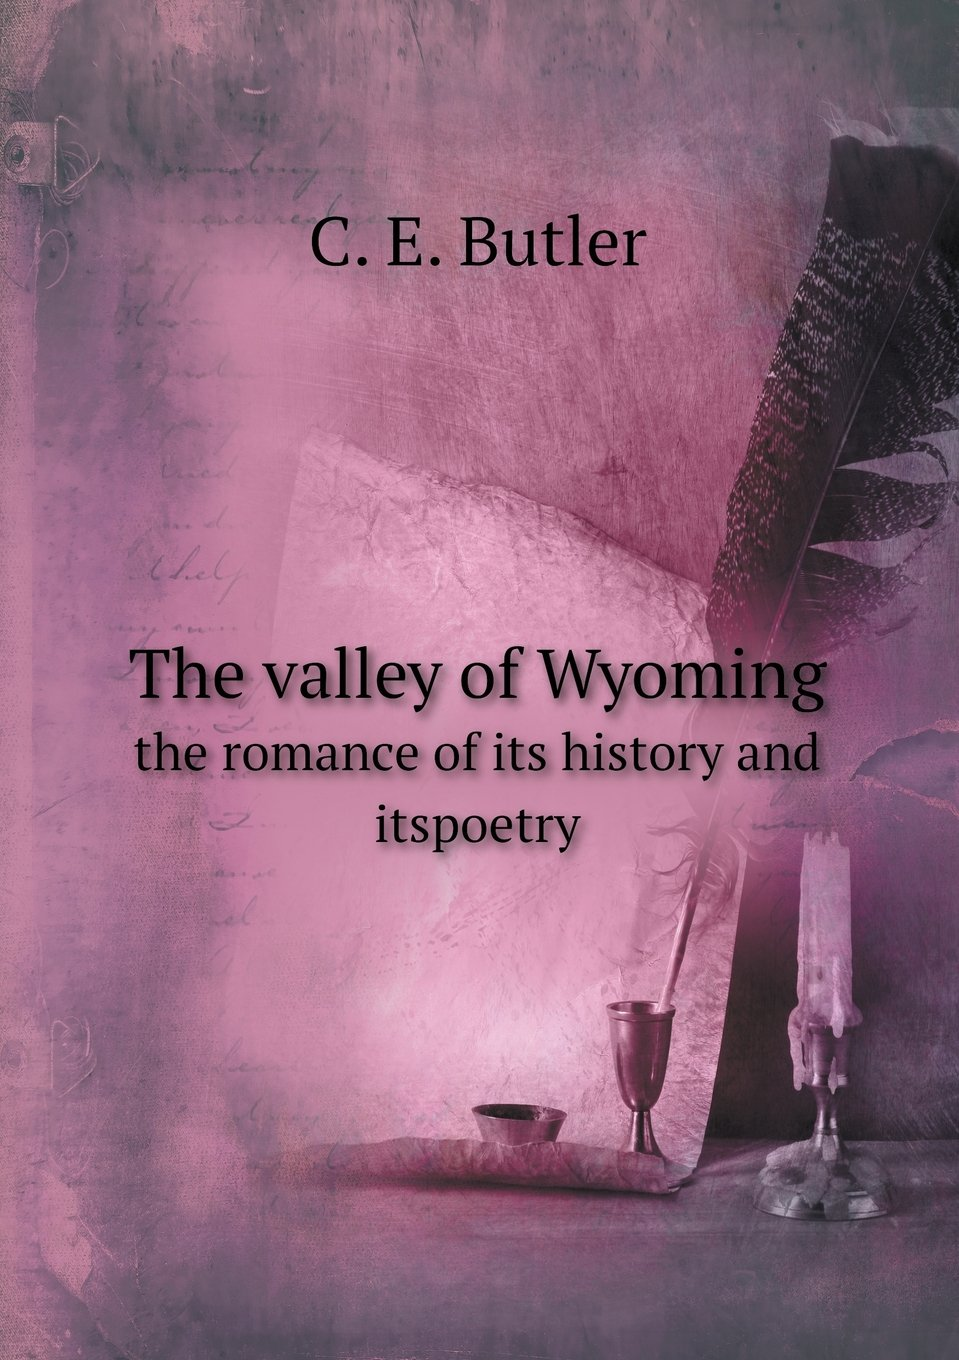 The valley of Wyoming the romance of its history and itspoetry PDF